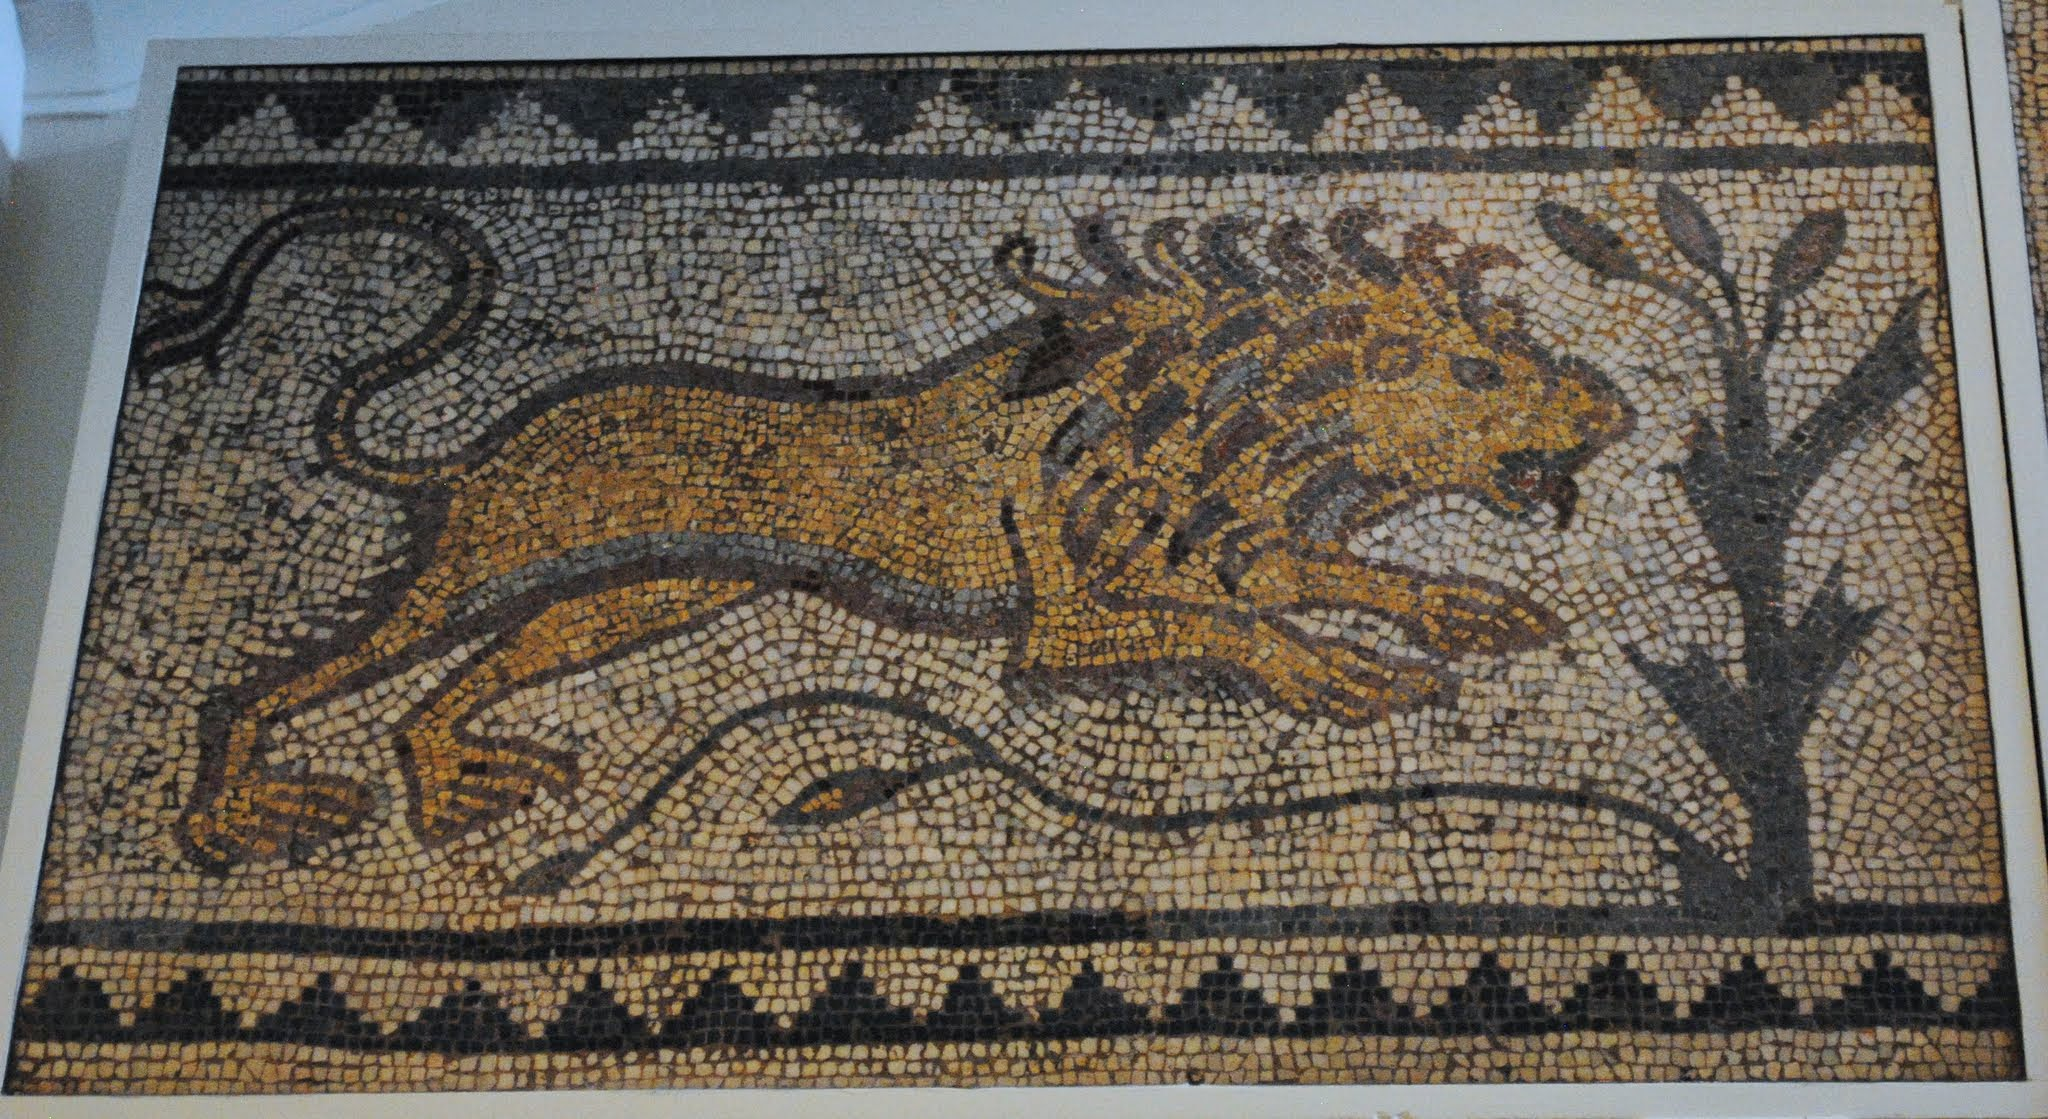 My Photos: British Museum -- Ancient Mosaics & Artifacts from Halicarnassus, Ephesus, and Xanthos